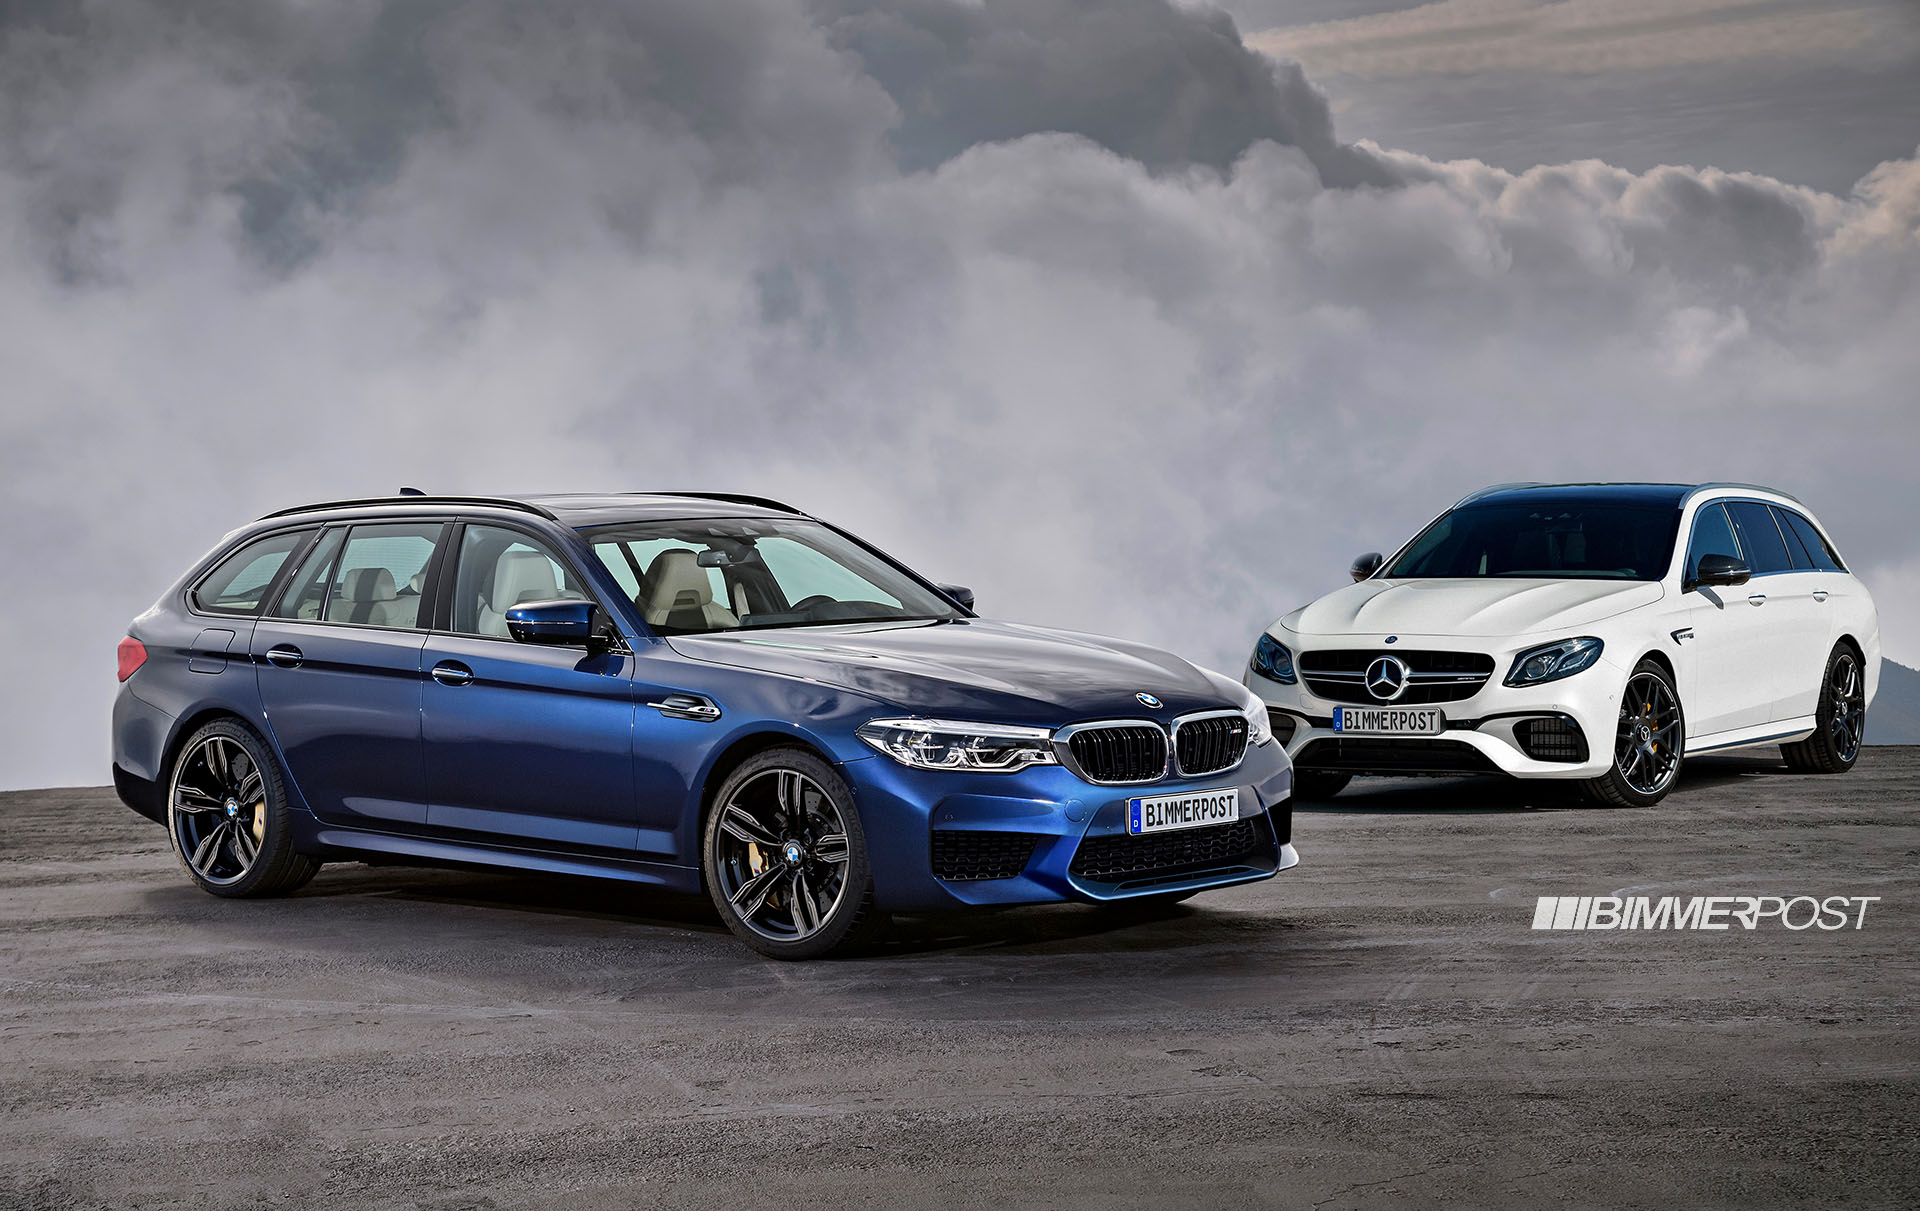 Our Take on the F90 M5 and M5 Touring. Yep, It's Stunning!